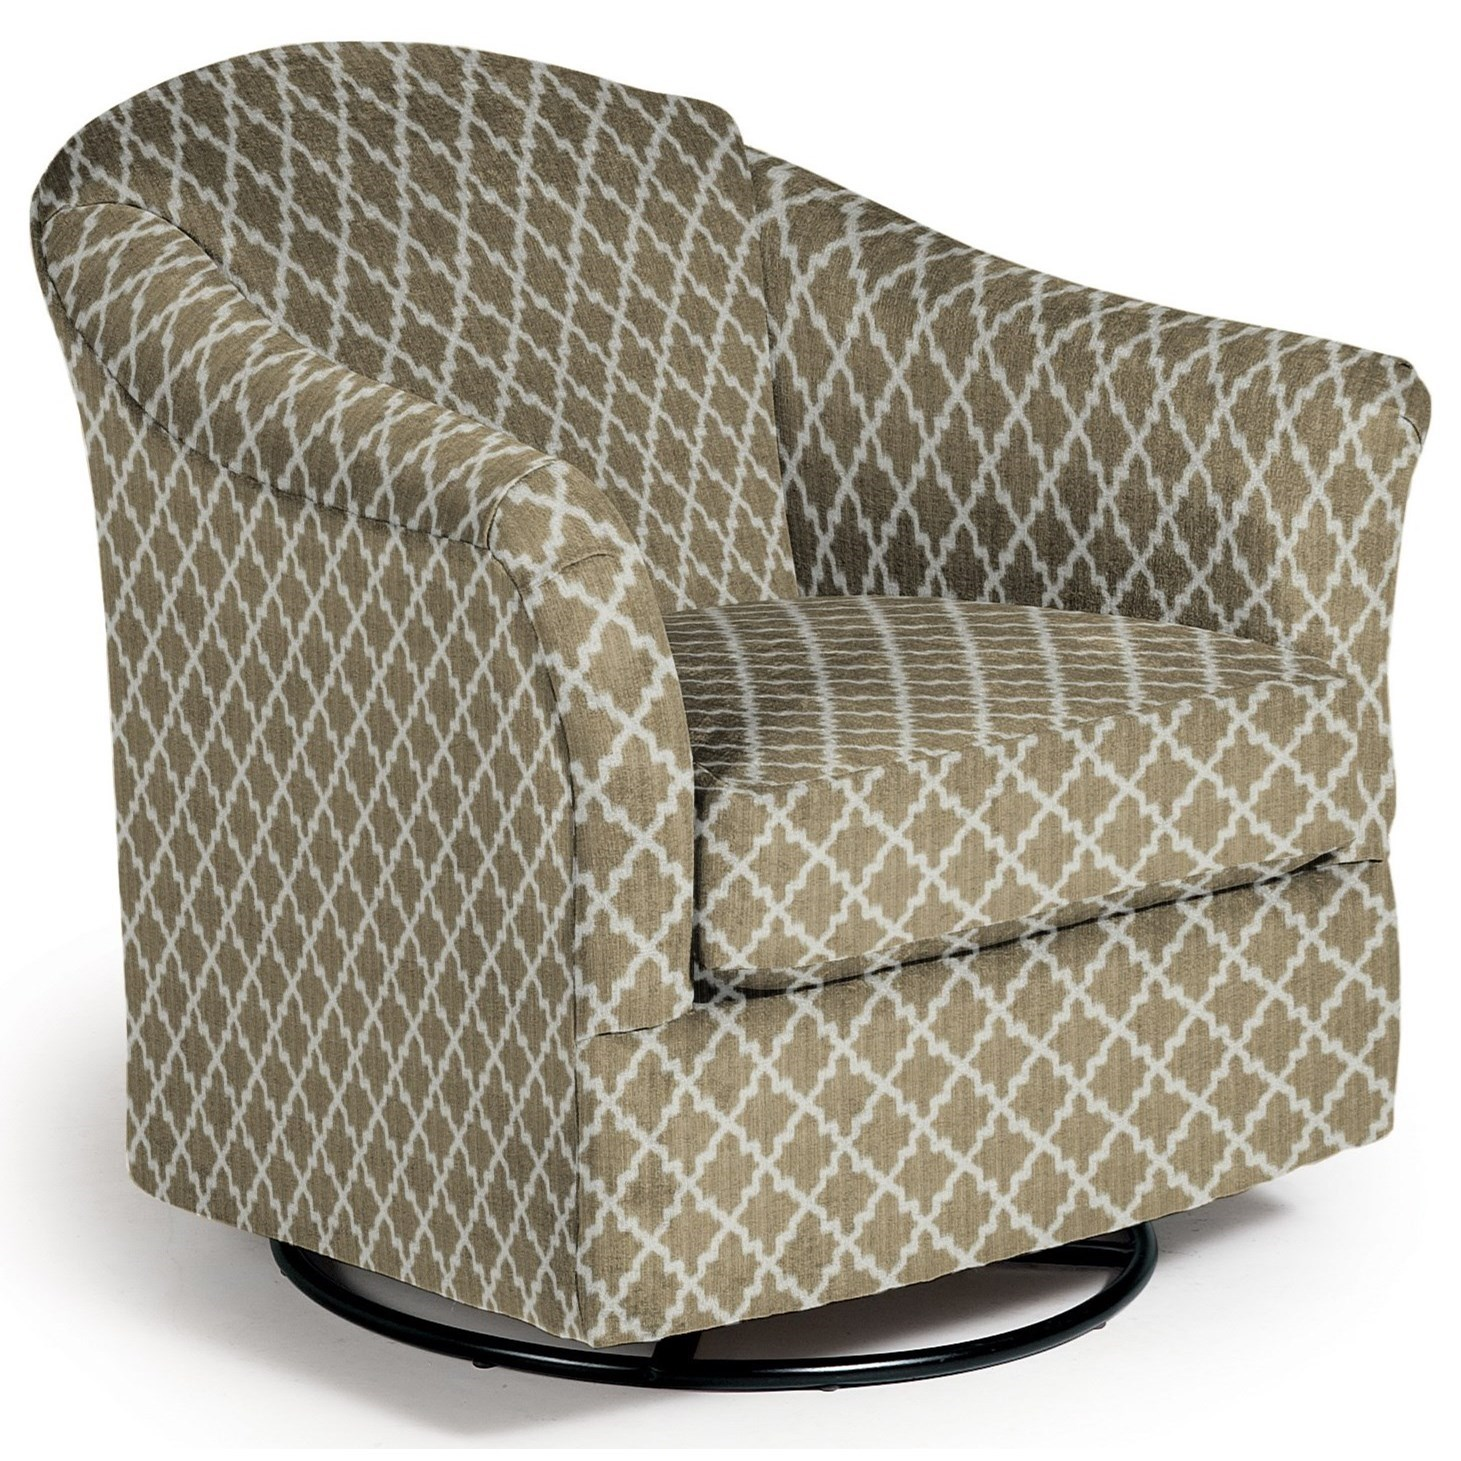 Swivel Glide Chairs Darby Swivel Glider by Best Home Furnishings at Darvin Furniture